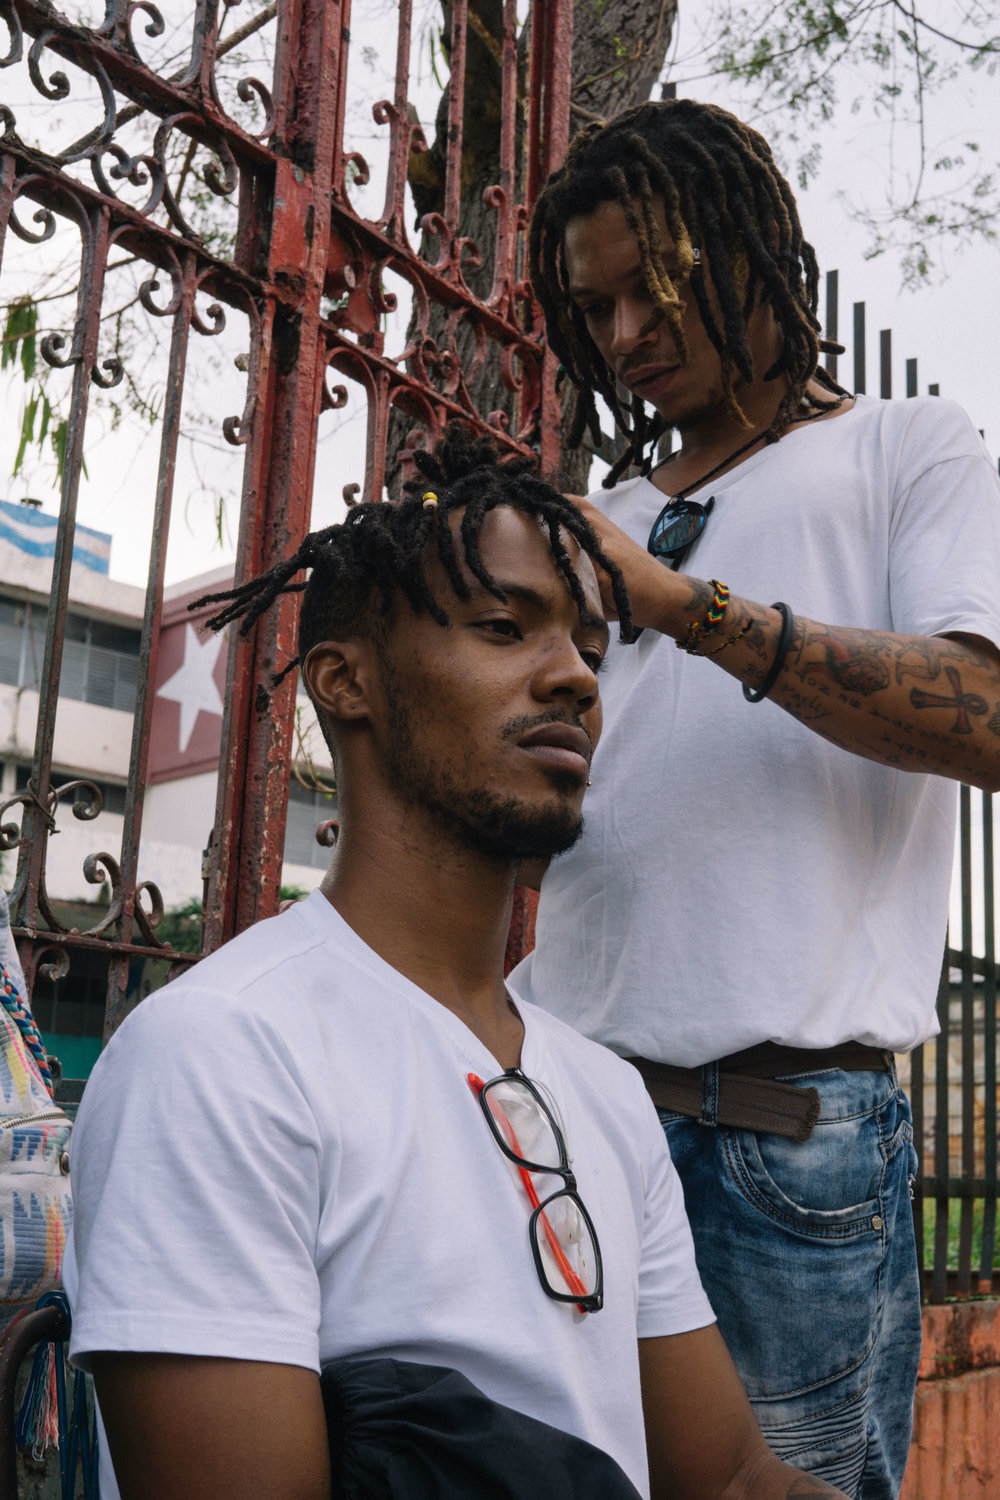 two men re-twisting each other's Locs during a street art festival